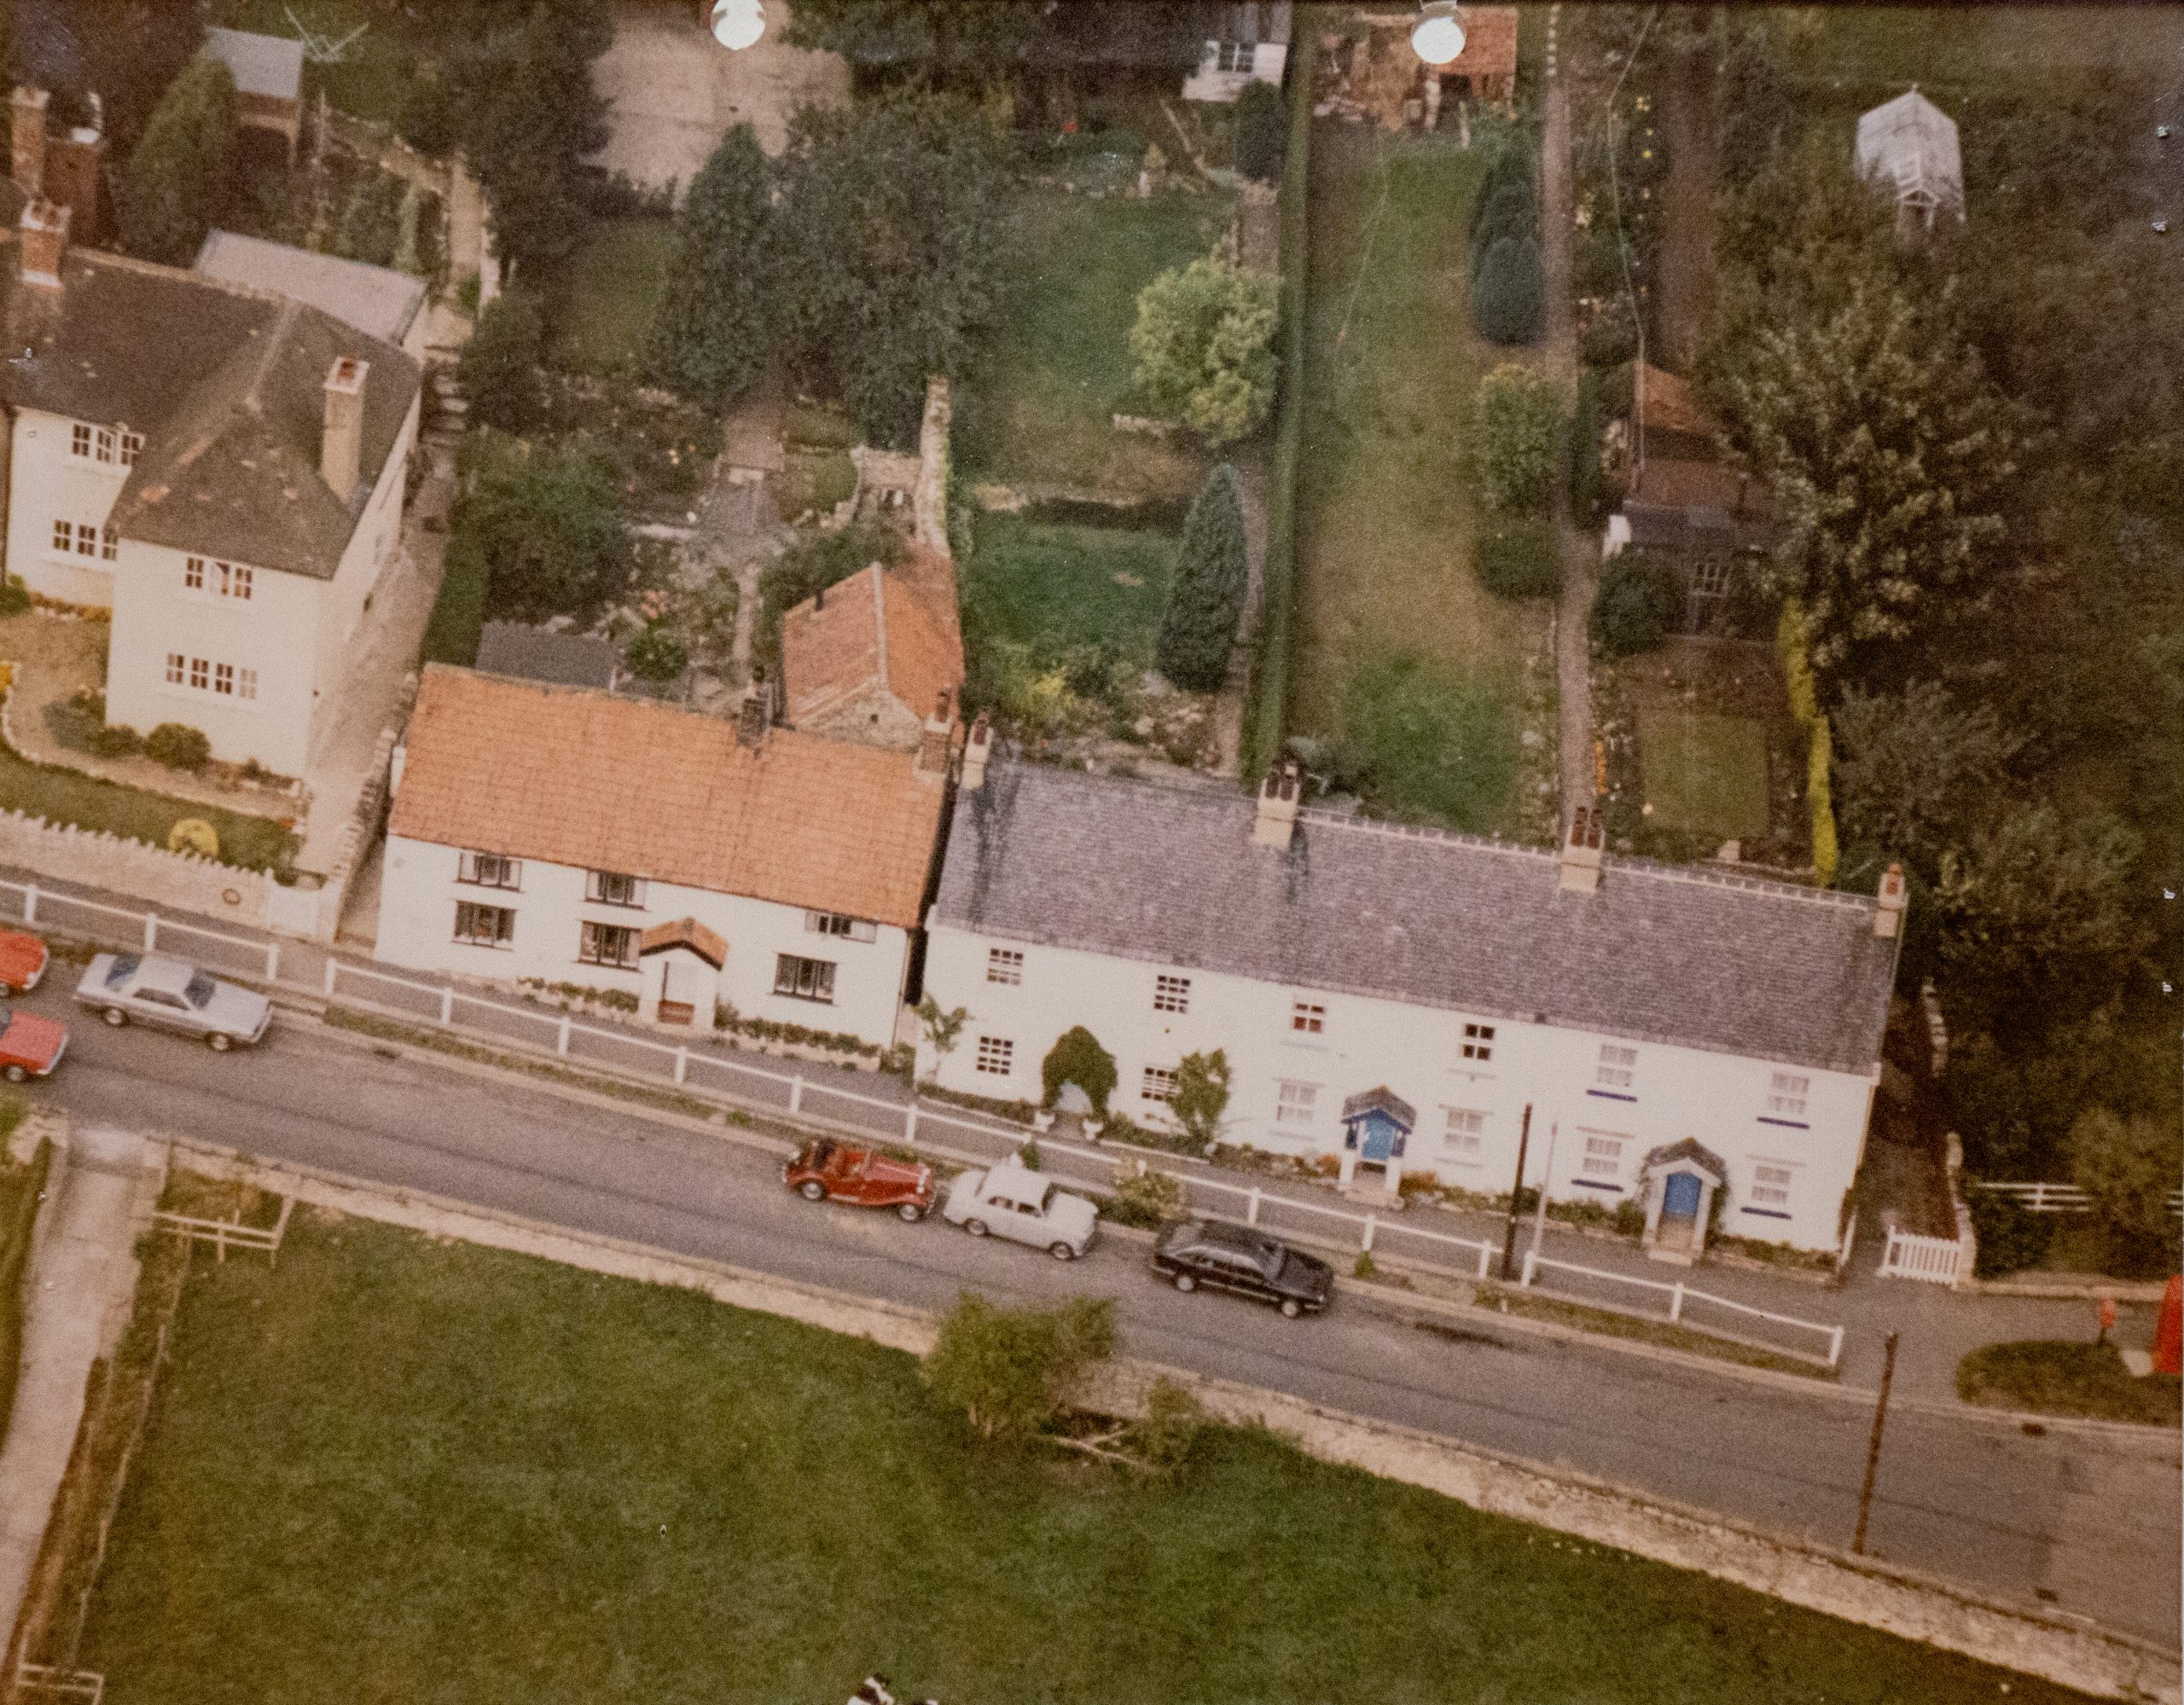 Ariel photo of Main street, Walton